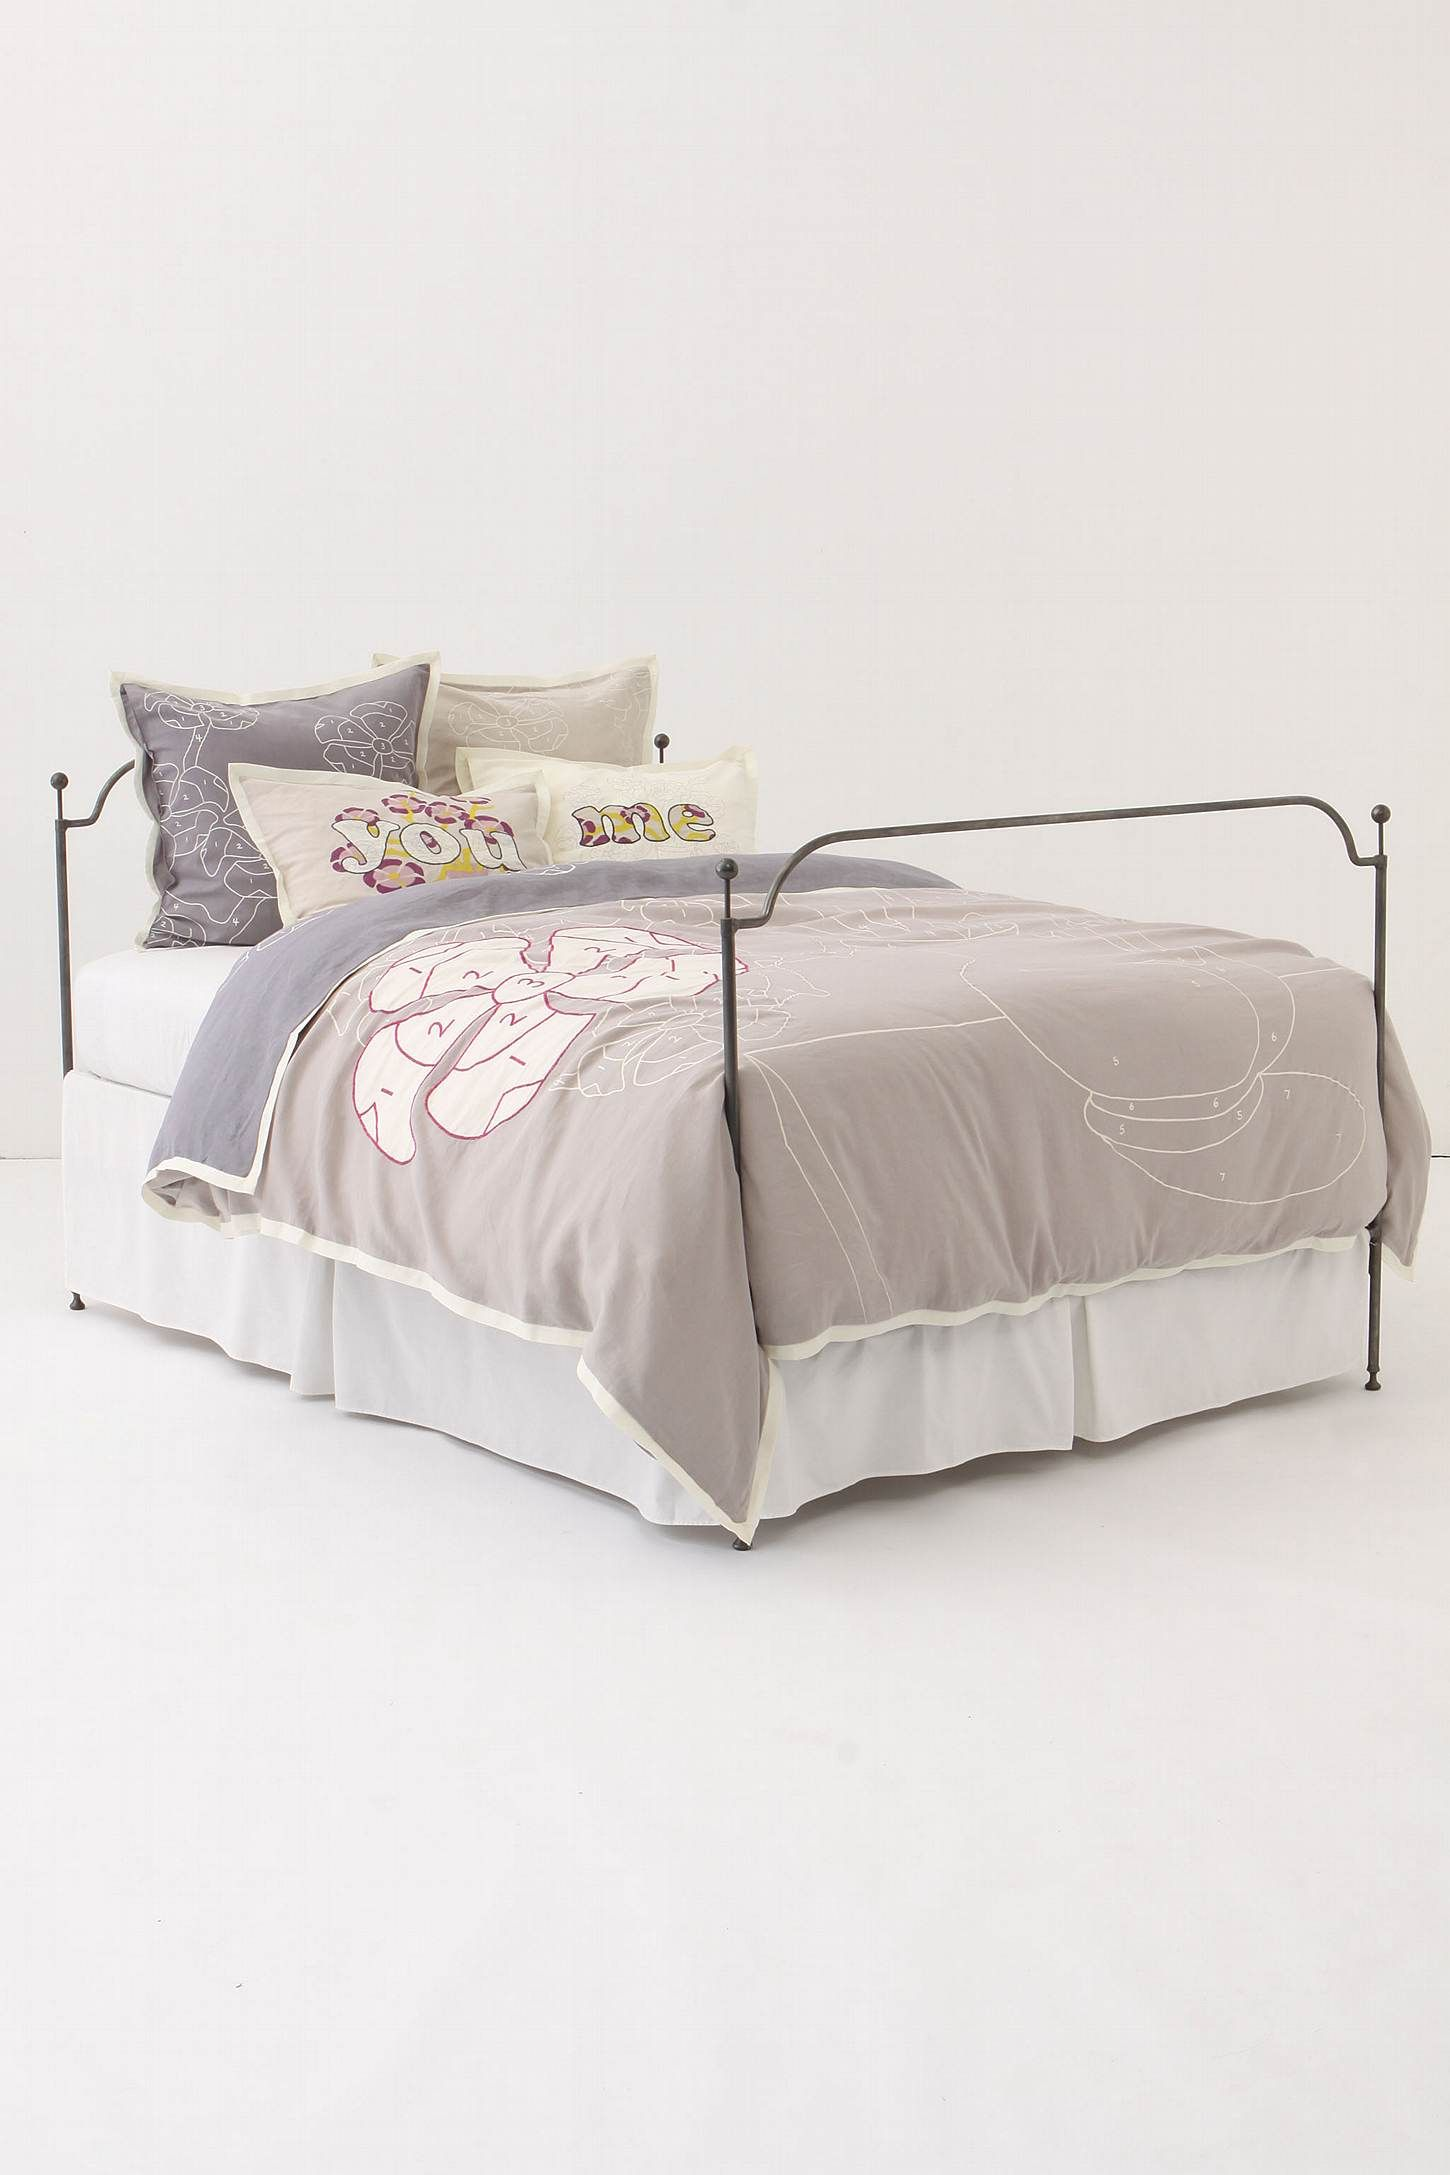 You and Me Duvet $129.95